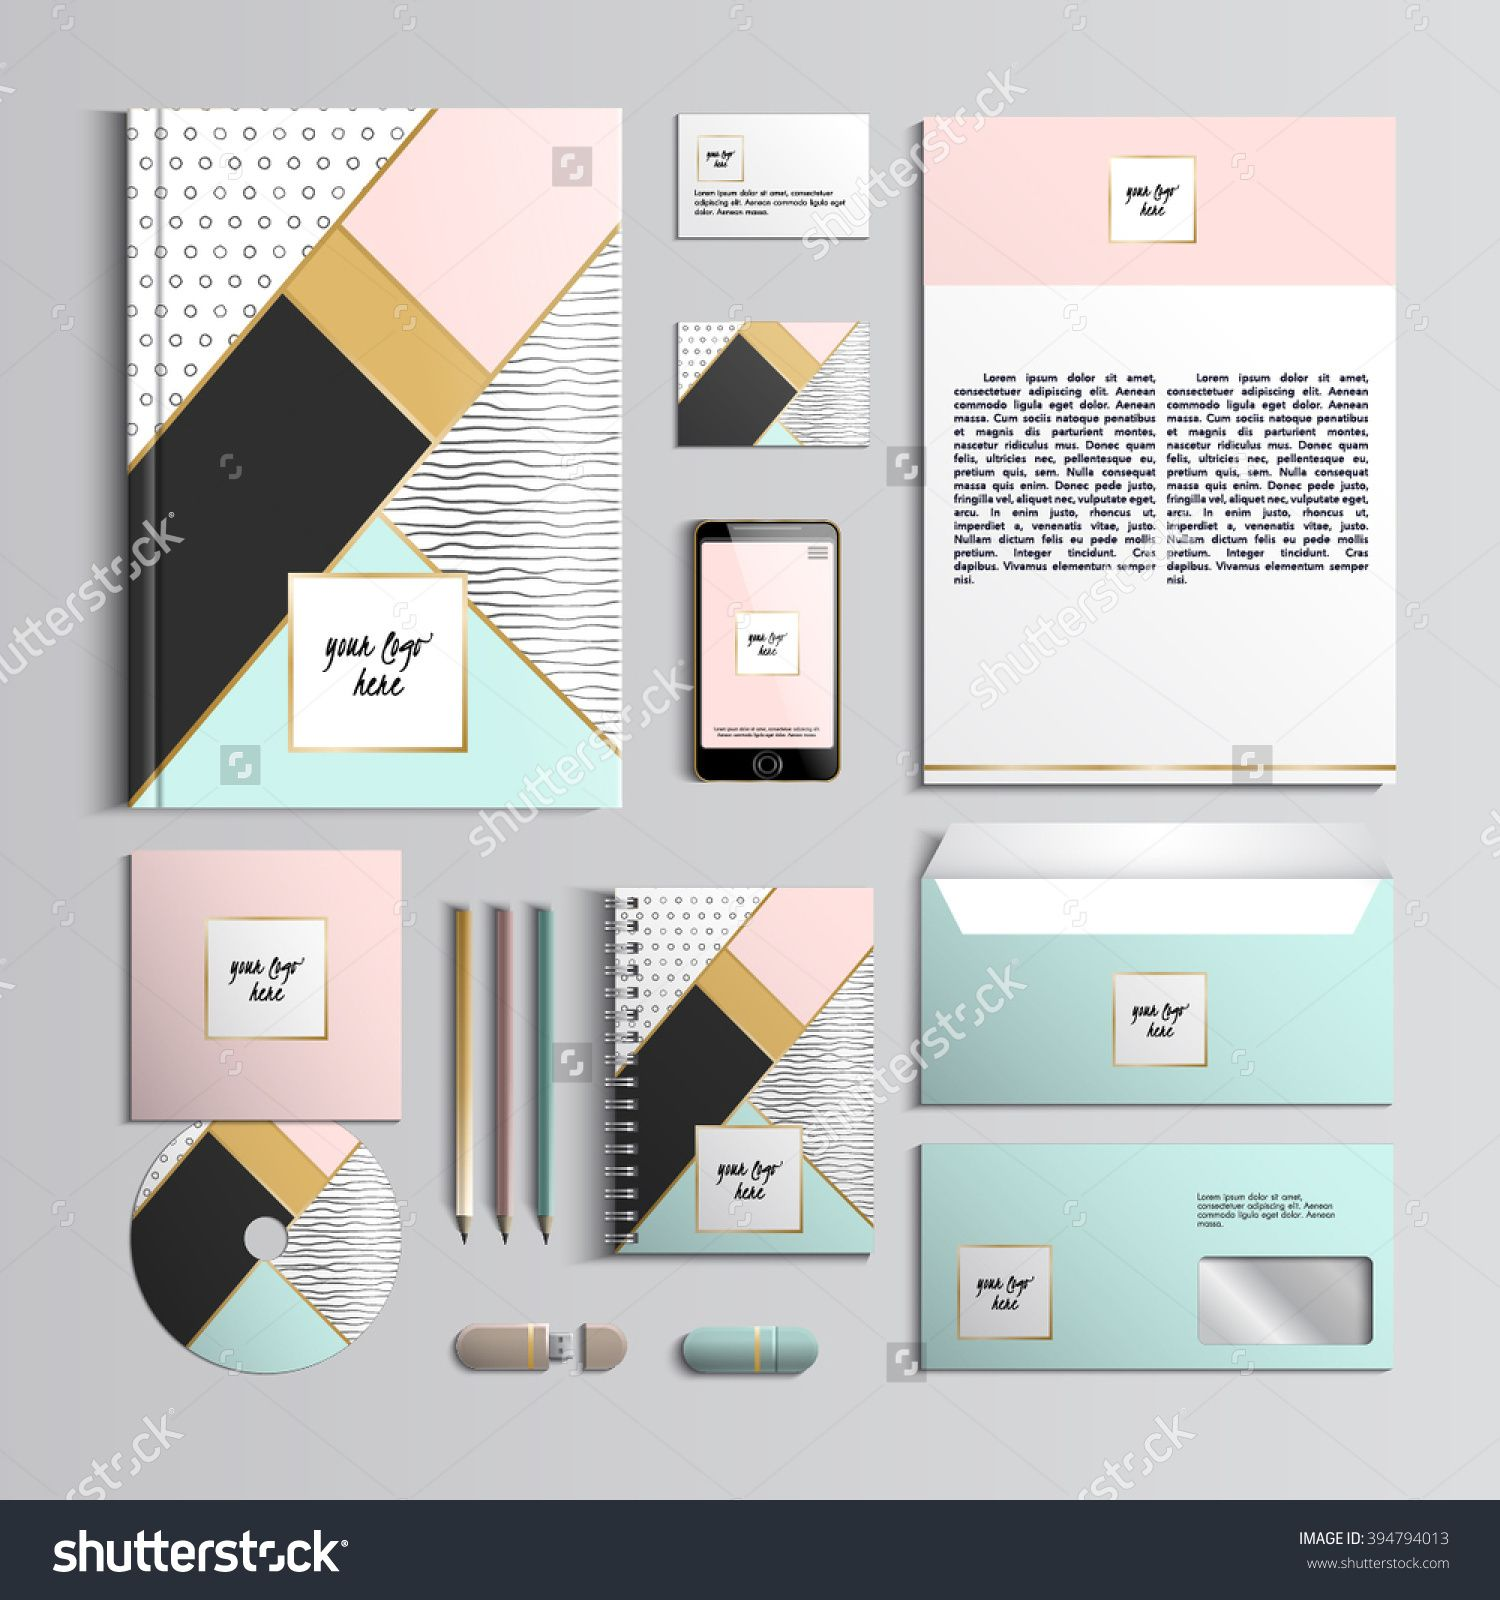 Corporate identity template in pink and turquoise colors with ...